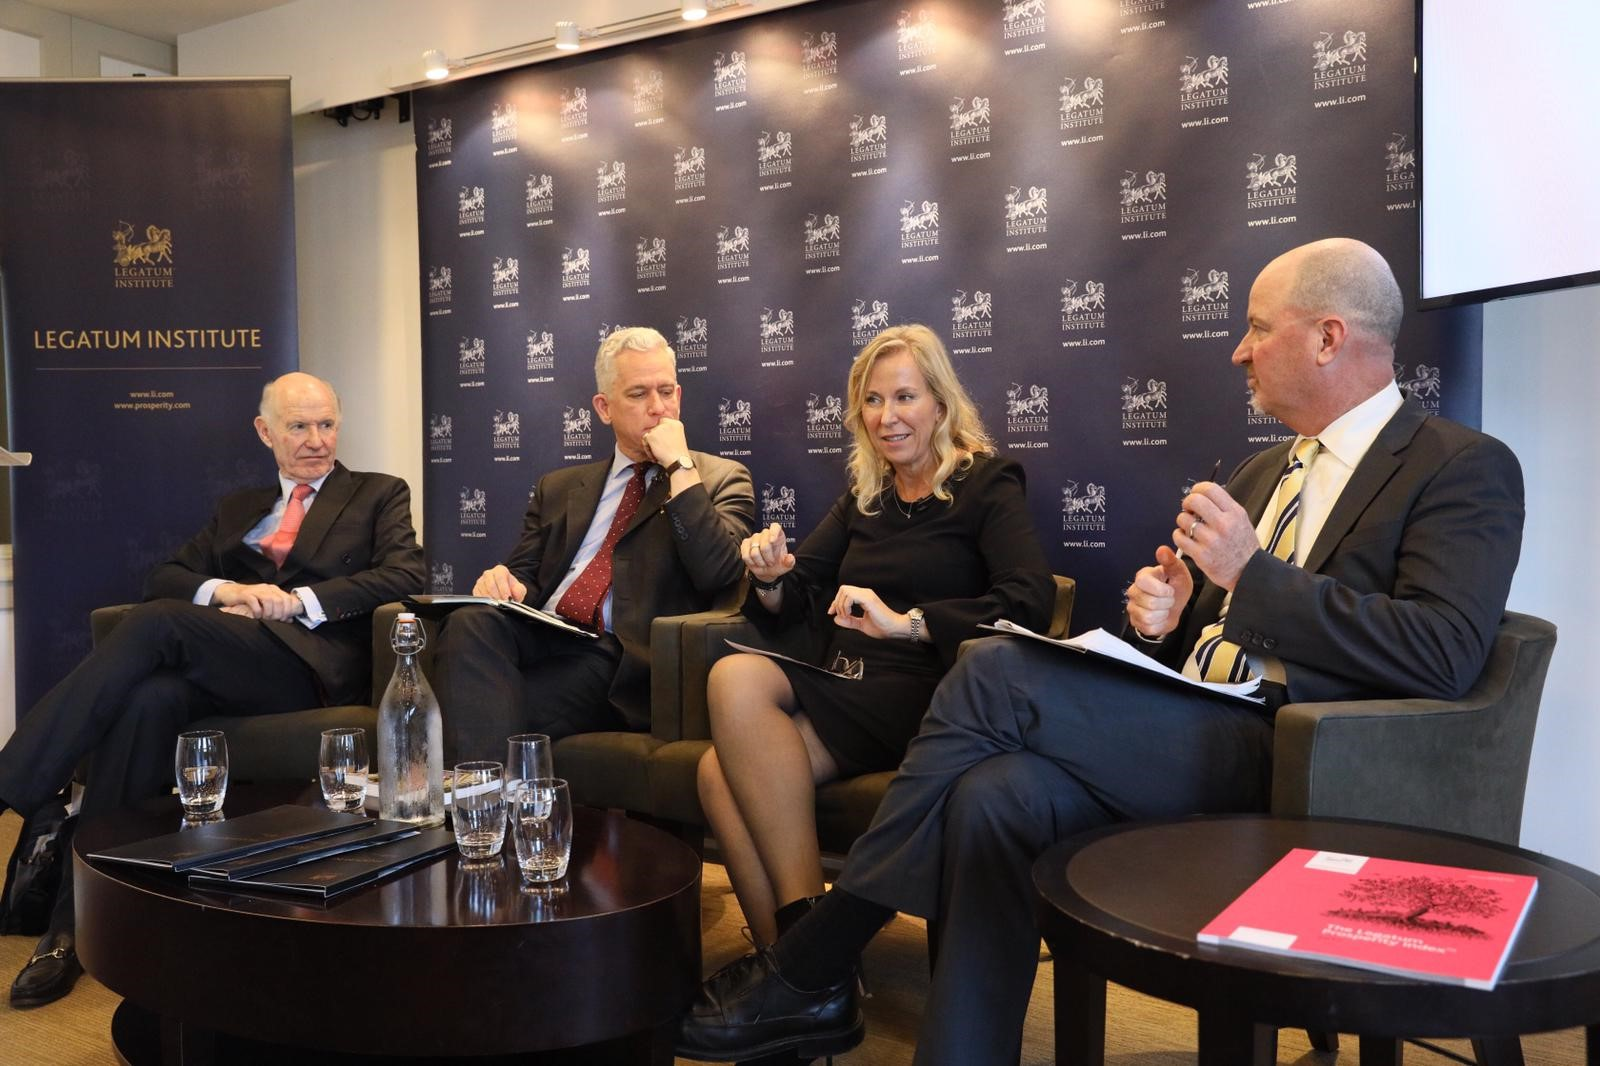 Pam Bateson, CEO, speaking at the Legatum Institute (2018)